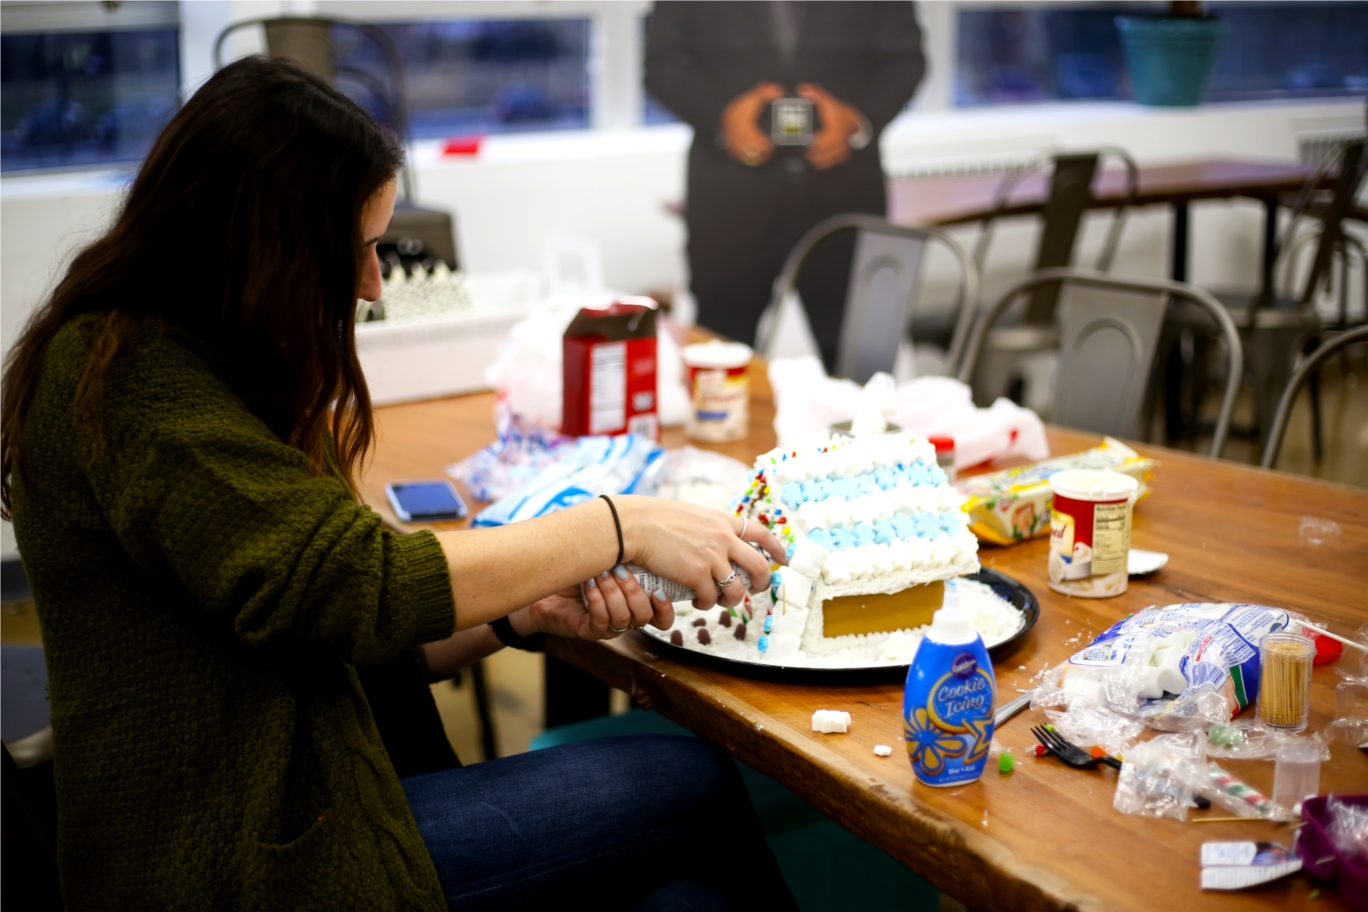 We love celebrating holidays in the office! Each holiday comes with pot luck phamily lunches and fun activities. This year, we made gingerbread houses for our local boys and girls club to vote on their favorite.